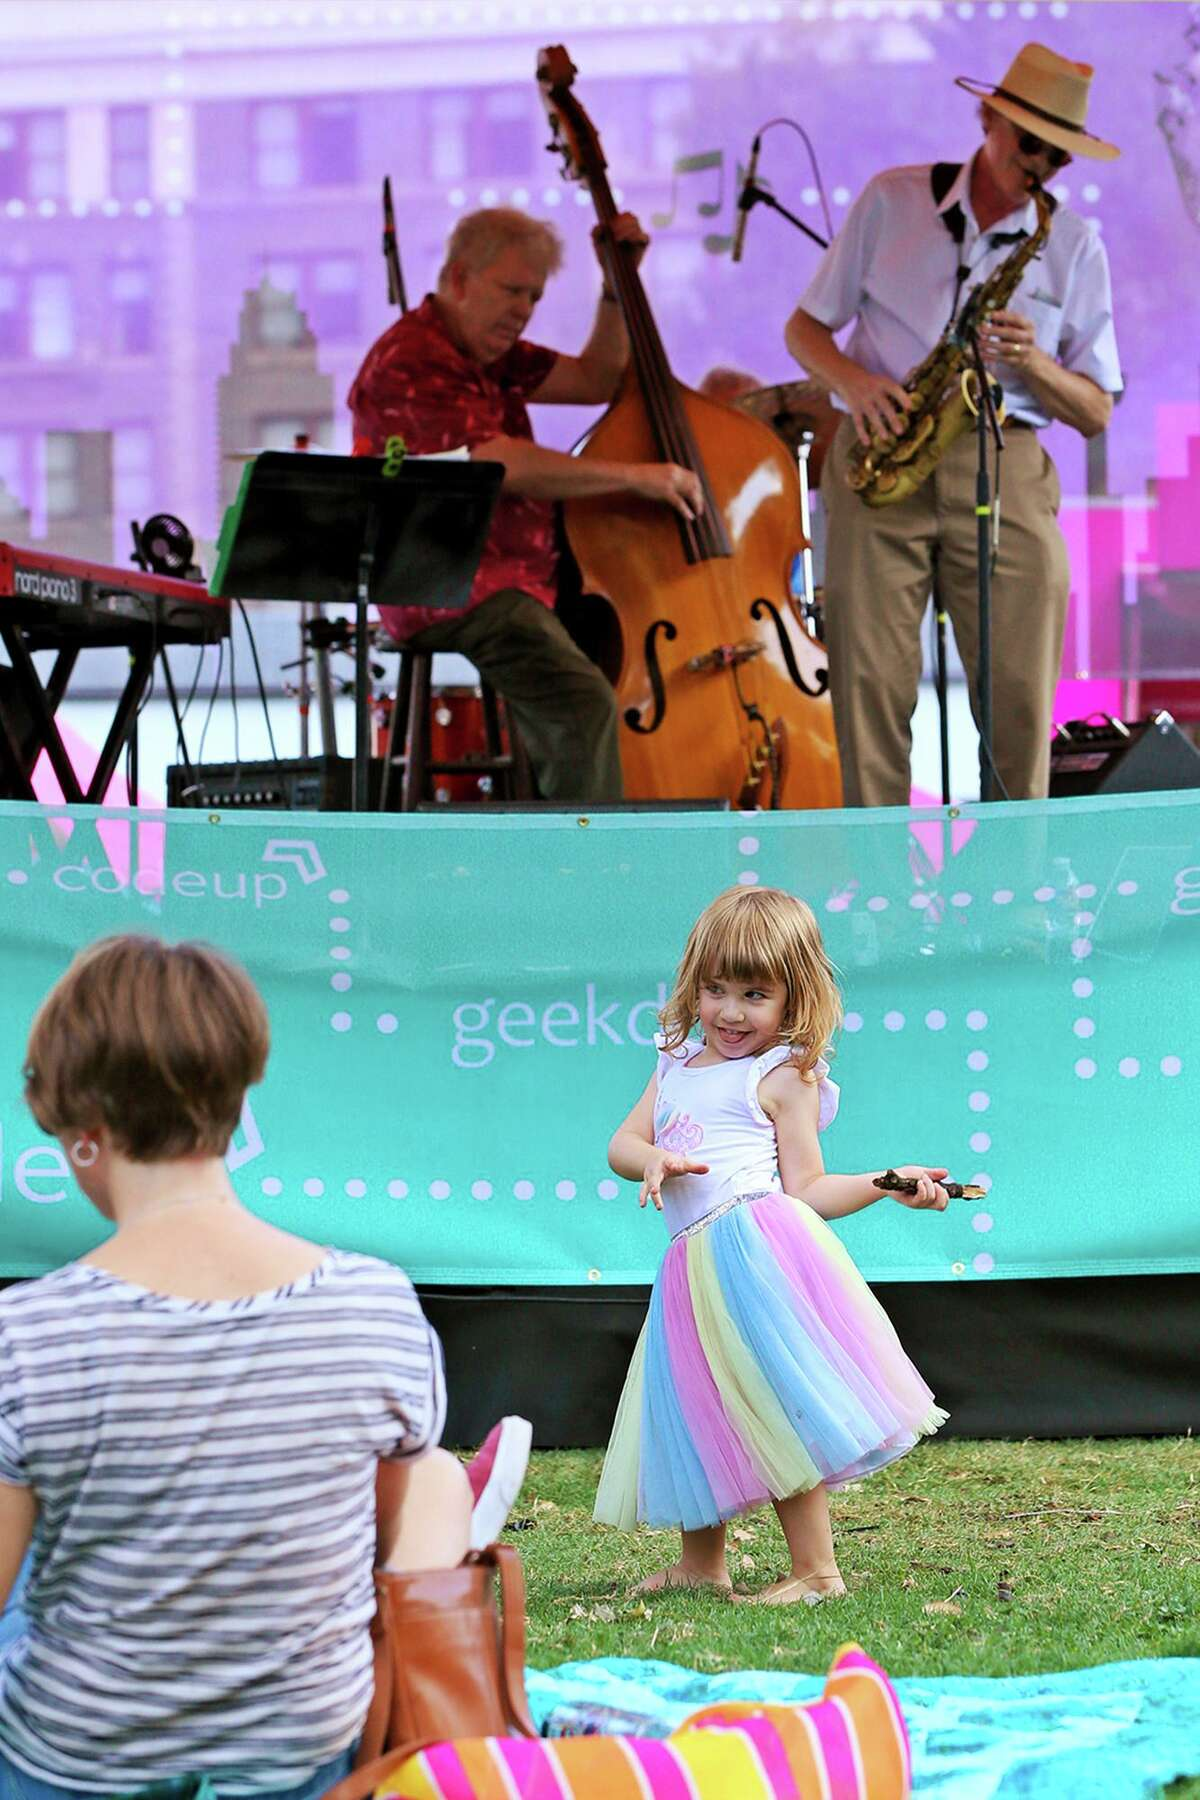 Hazel Young Hess, 3, dances in front of the Tech Tempo stage, where her grandfather, Mark Hess, plays piano with the Hess Brothers at the 36th Annual Jazz'SAlive festival at Travis Park on Saturday, Sept. 21, 2019. This year's festival featured five-time Grammy winner Diane Reeves and local acts including The Lao Tizer Band, The U.S. Air Force Band dimensions in Blue and the Adrian Ruiz Quartet